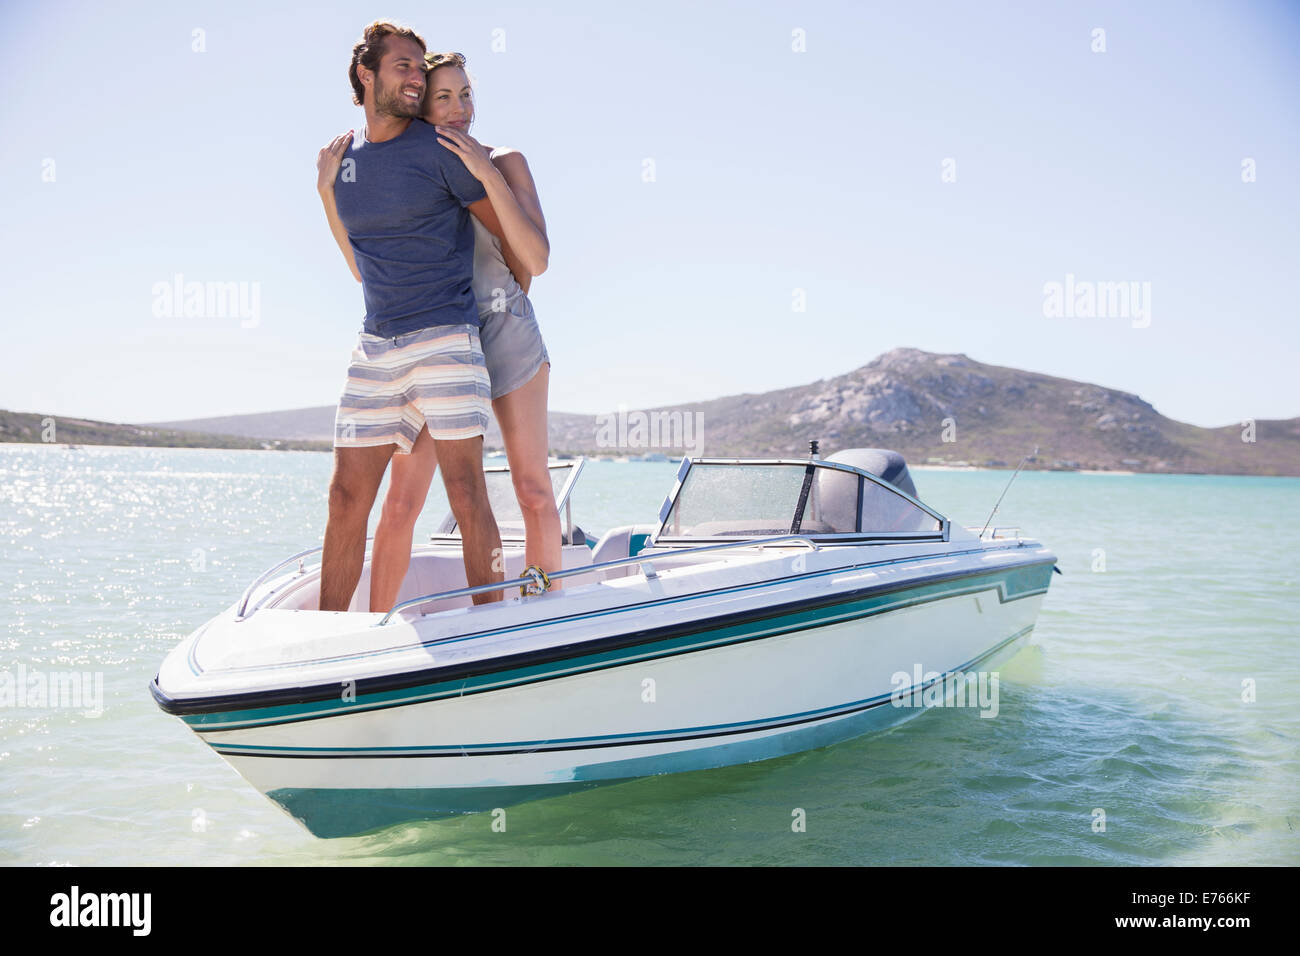 Couple standing on boat together - Stock Image